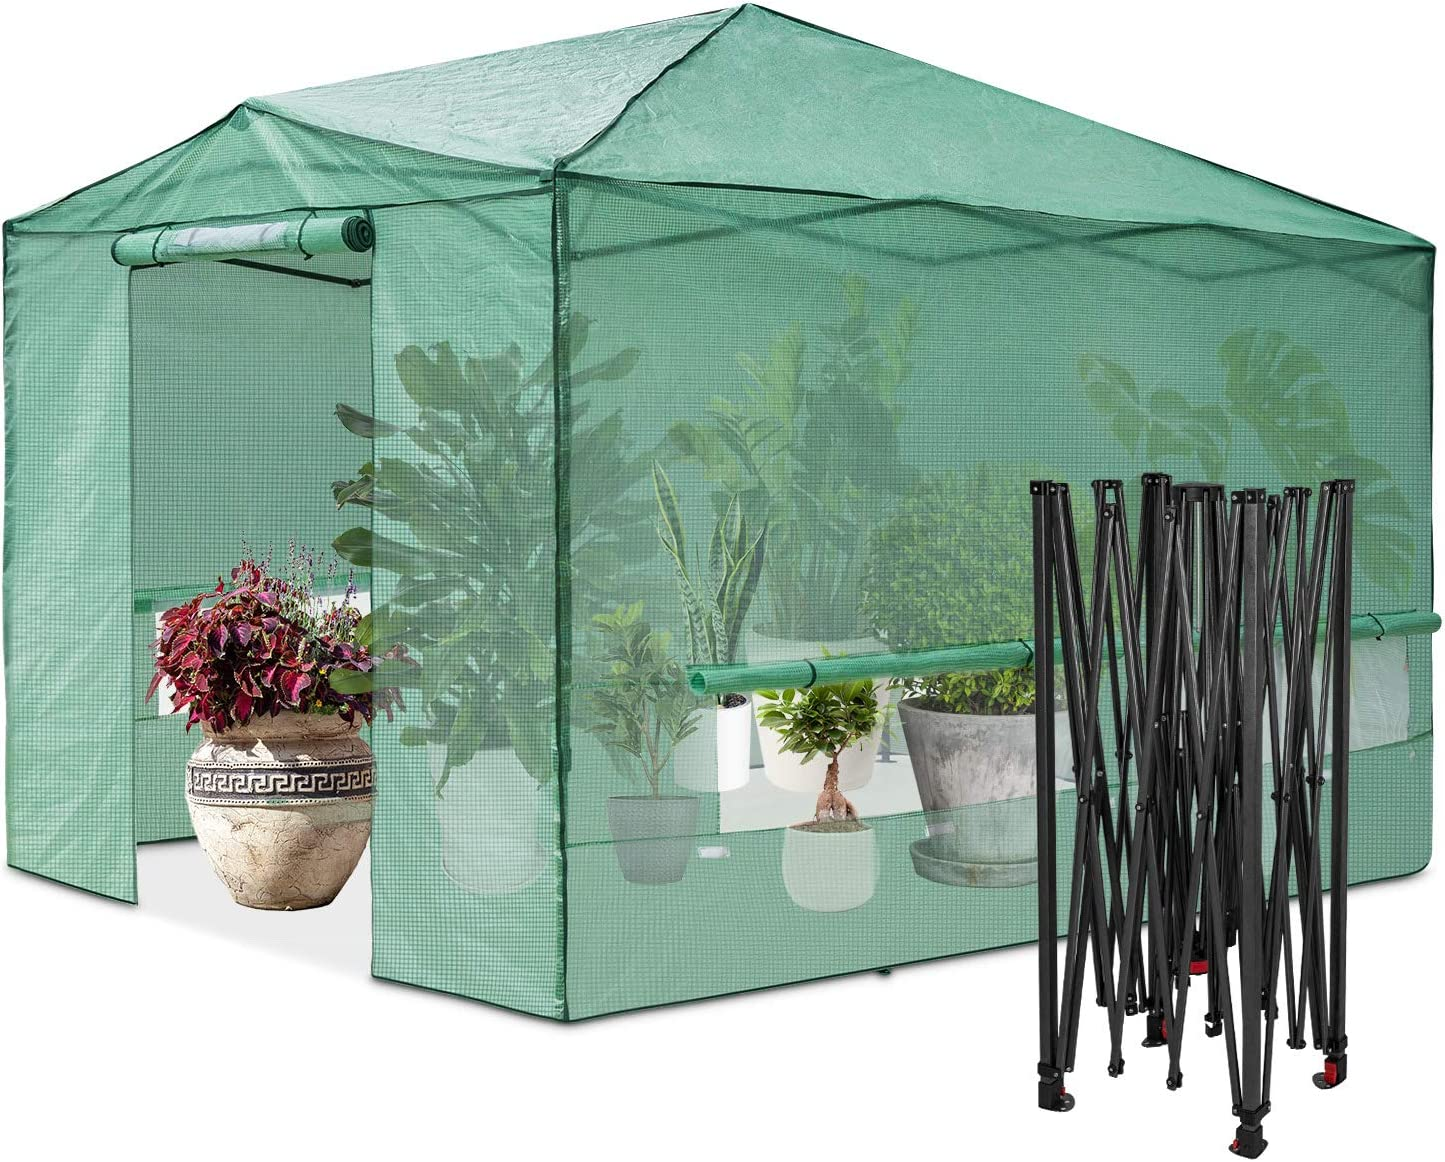 EAGLE PEAK 12'x8' Portable Large Walk-in Greenhouse Instant Pop-up Fast Setup Indoor Outdoor Plant Gardening Green House Canopy, Front Roll-Up Zipper Entry Doors and Roll-Up Side Windows